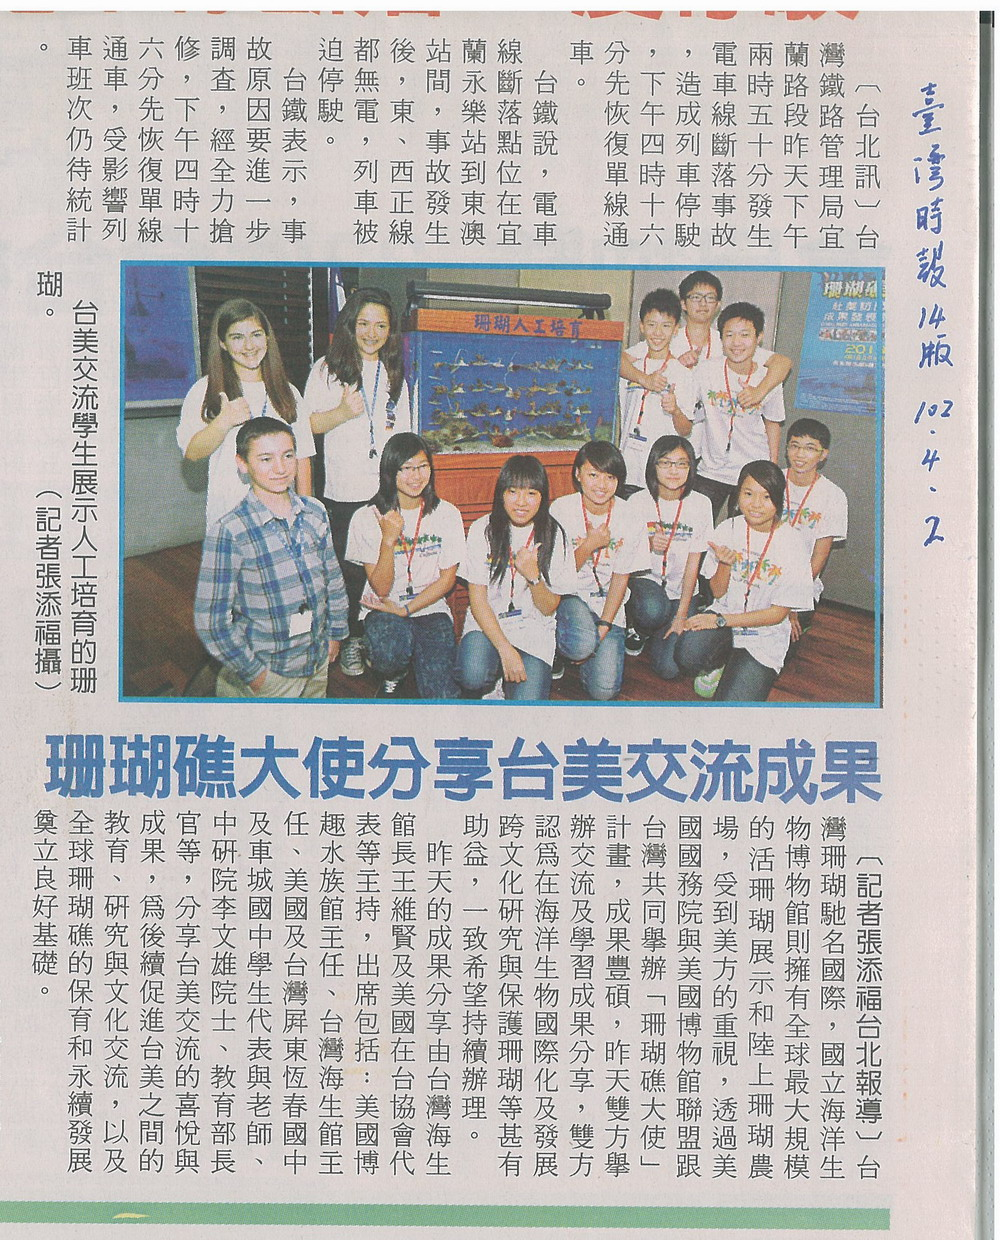 Press clipping from the Coral Reef Ambassadors' visit in Taiwan.